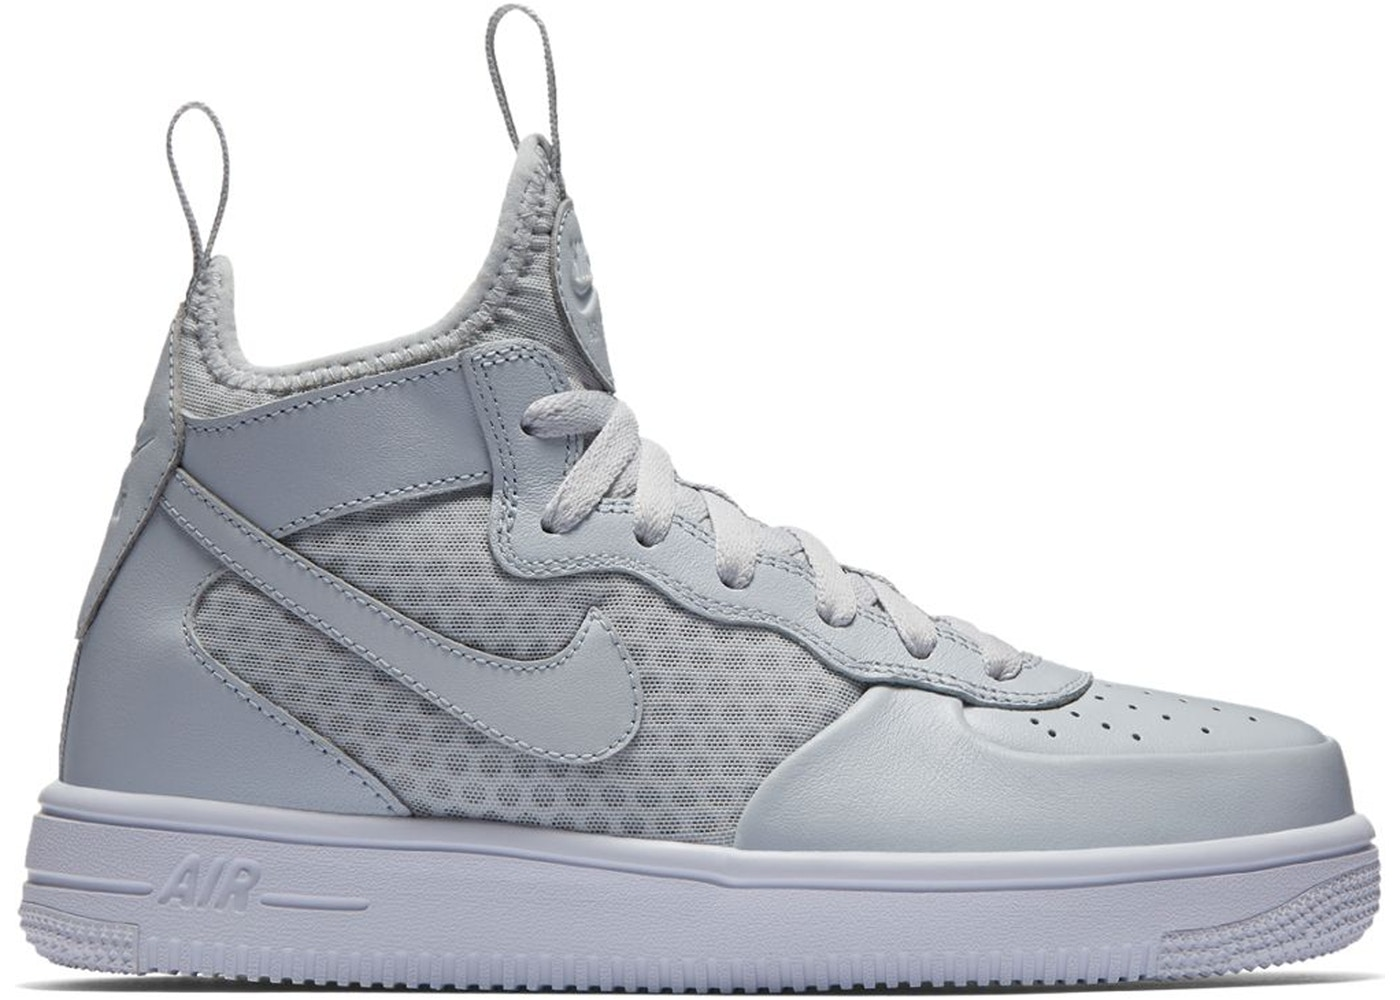 huge selection of 9c1f0 c1bd1 Air Force 1 Ultraforce Mid Grey (GS) - 869945-002